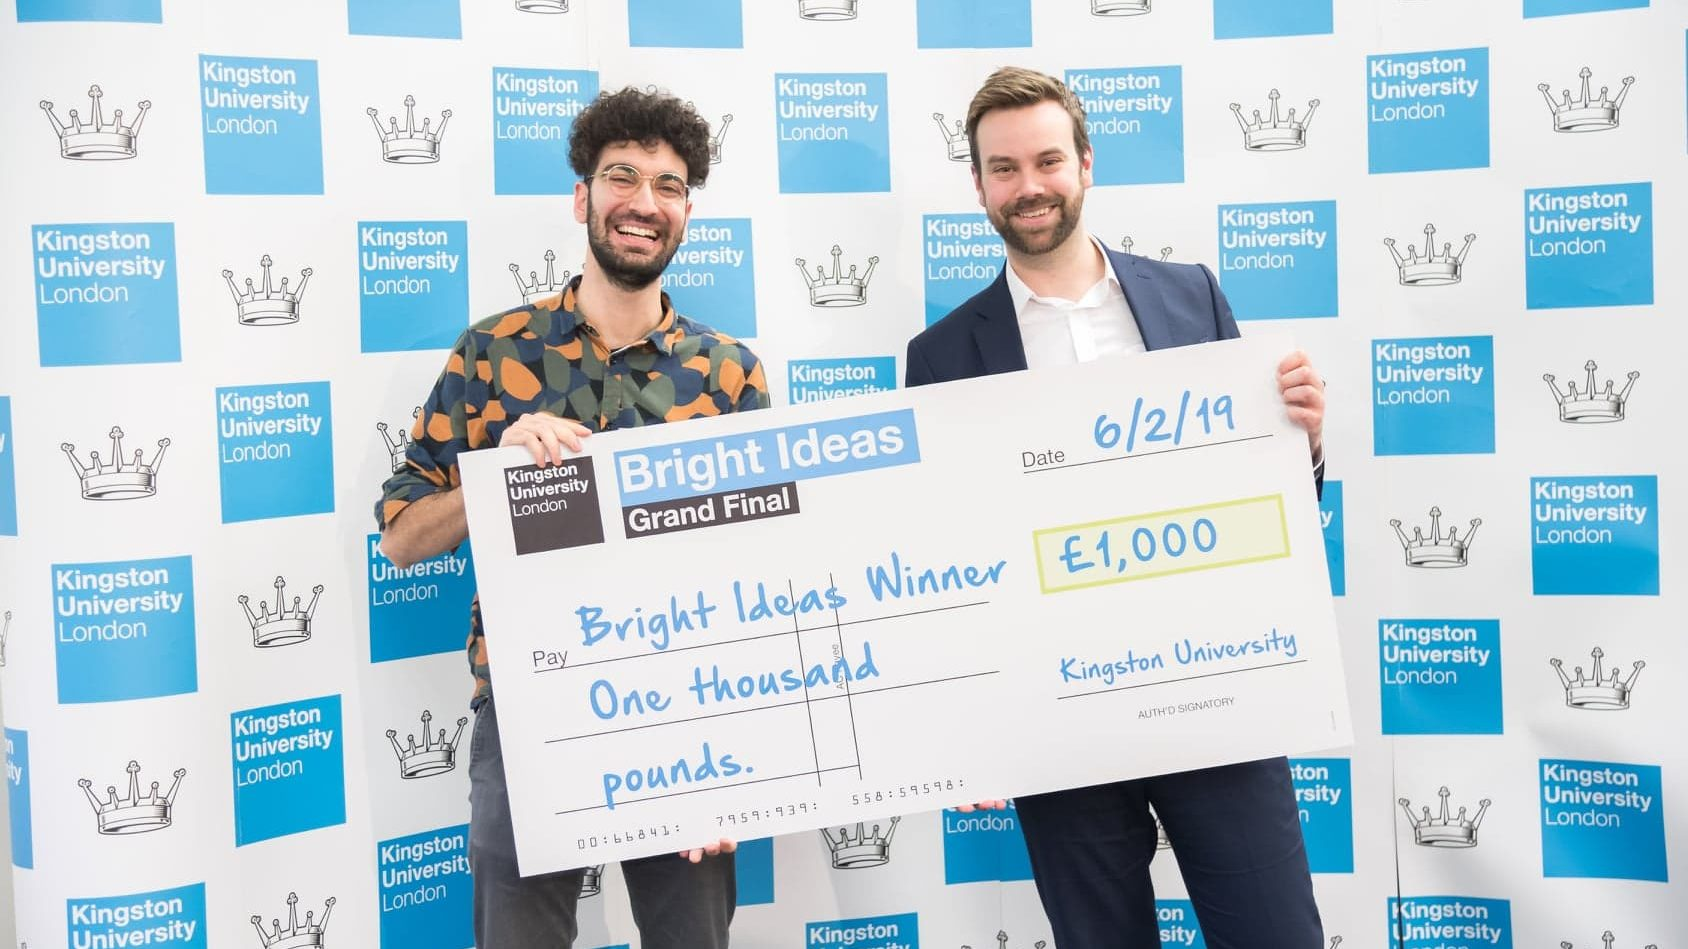 Bright Ideas competition likely to reach its highest applicant record